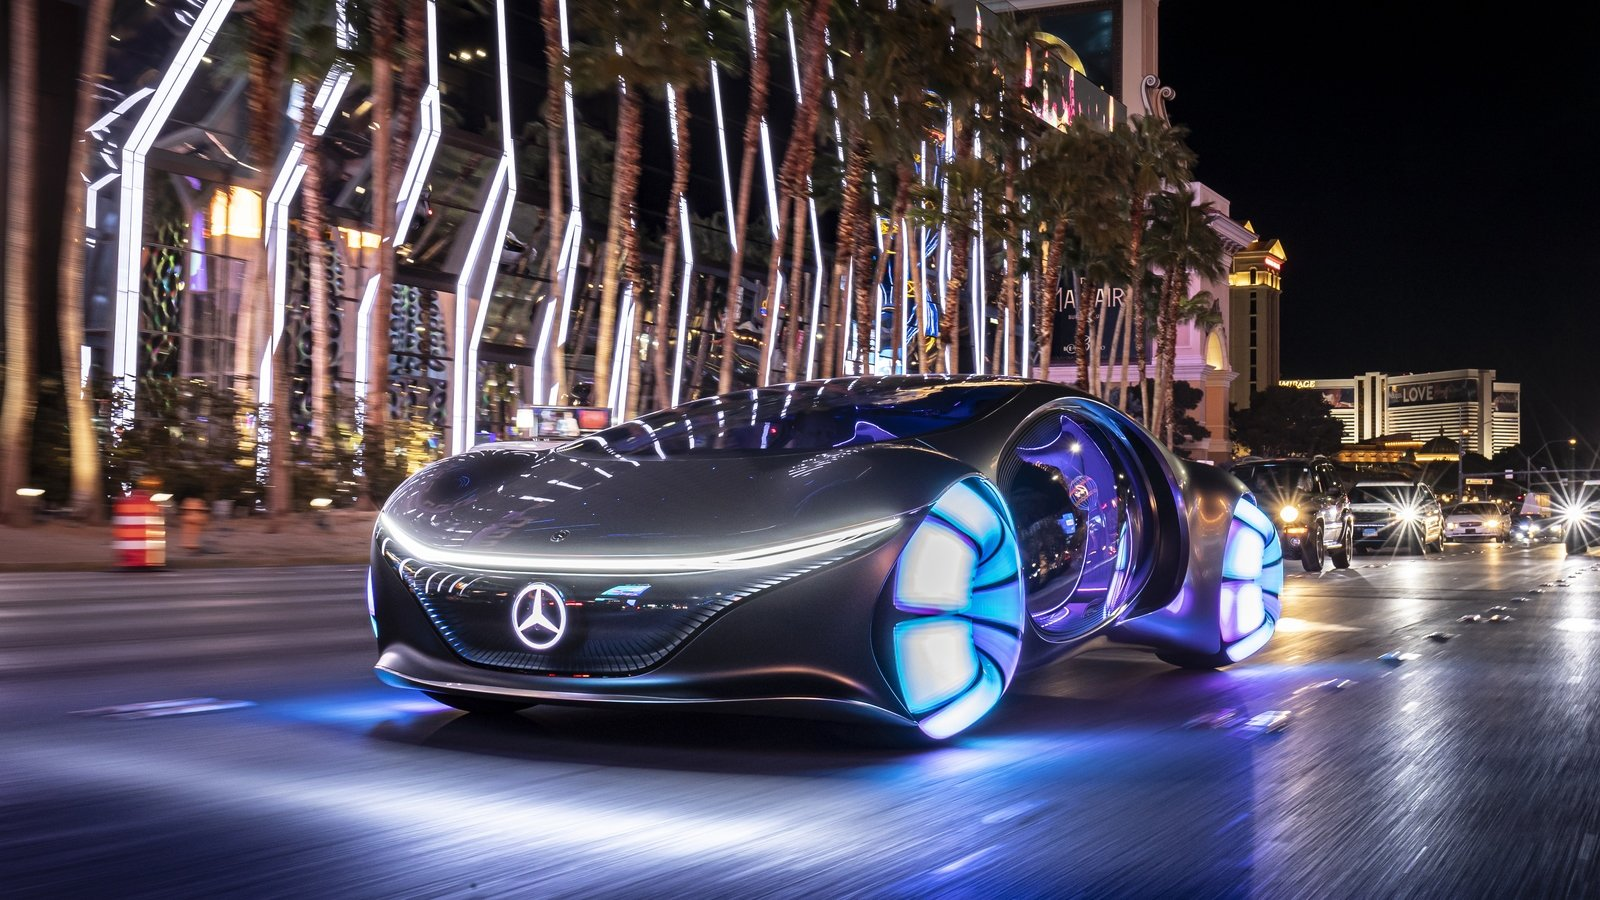 Mercedes Vision Avtr A Look Into The Impossible Future